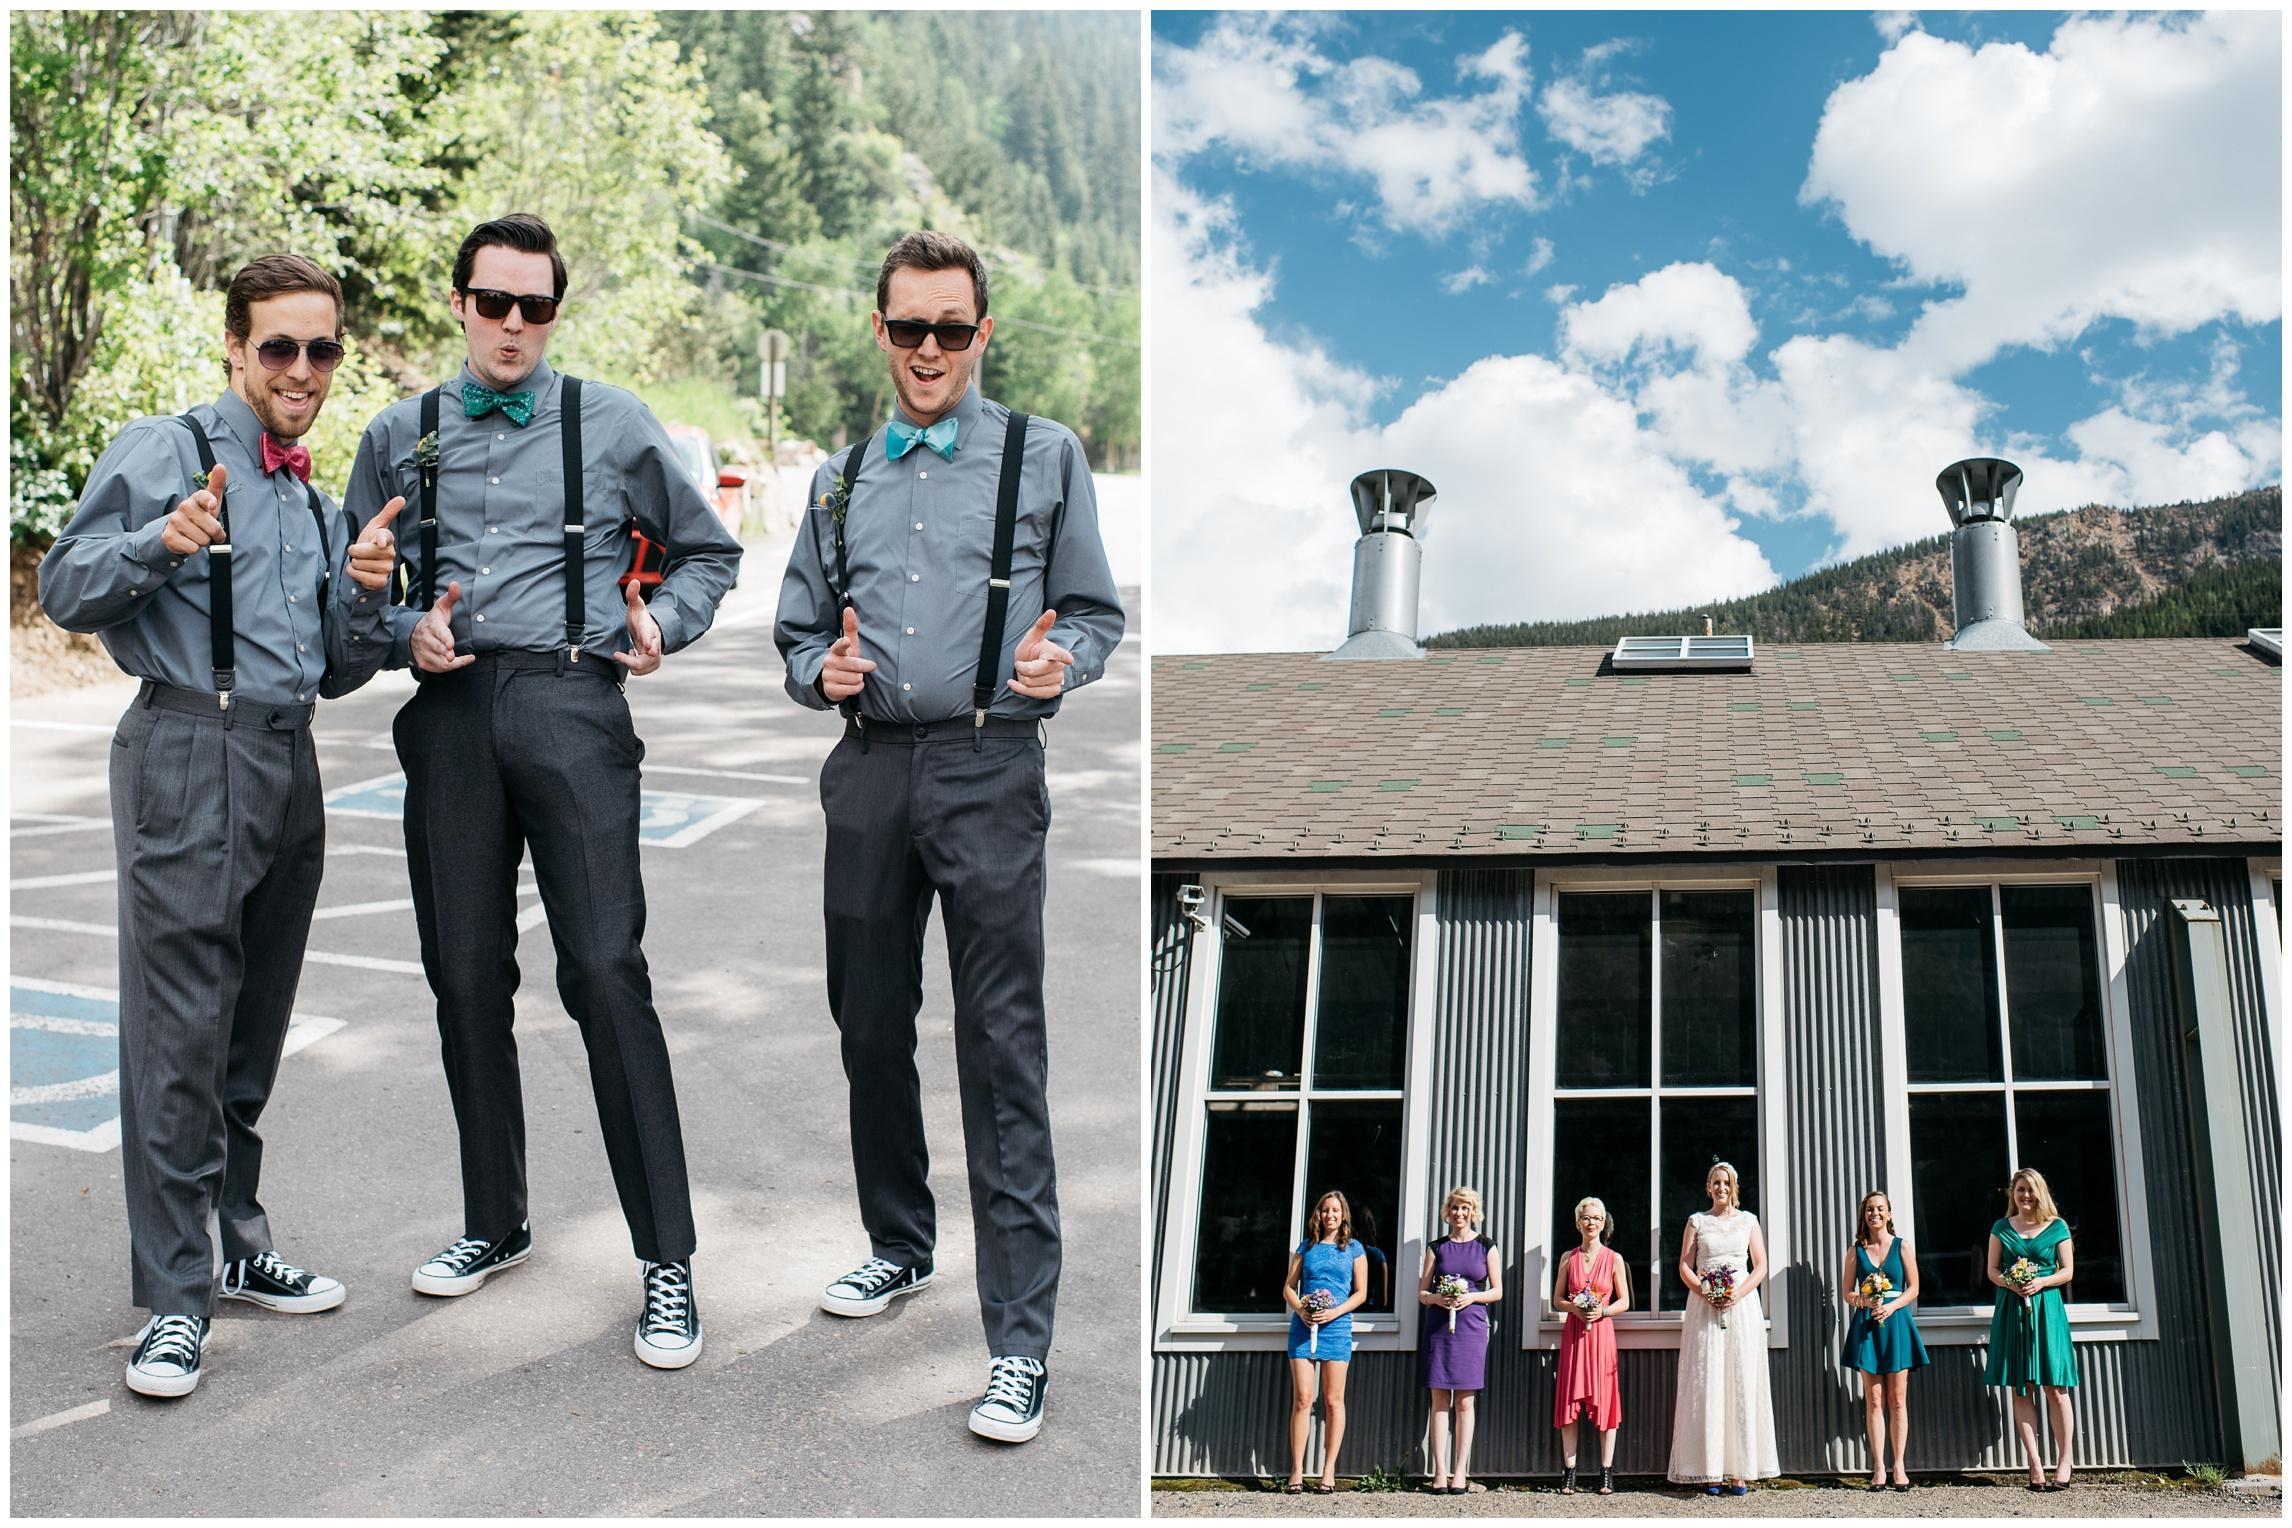 Groomsmen ham it up for the camera while bridesmaids look pretty in Georgetown, Colorado. Wedding photography by Sonja Salzburg of Sonja K Photography.